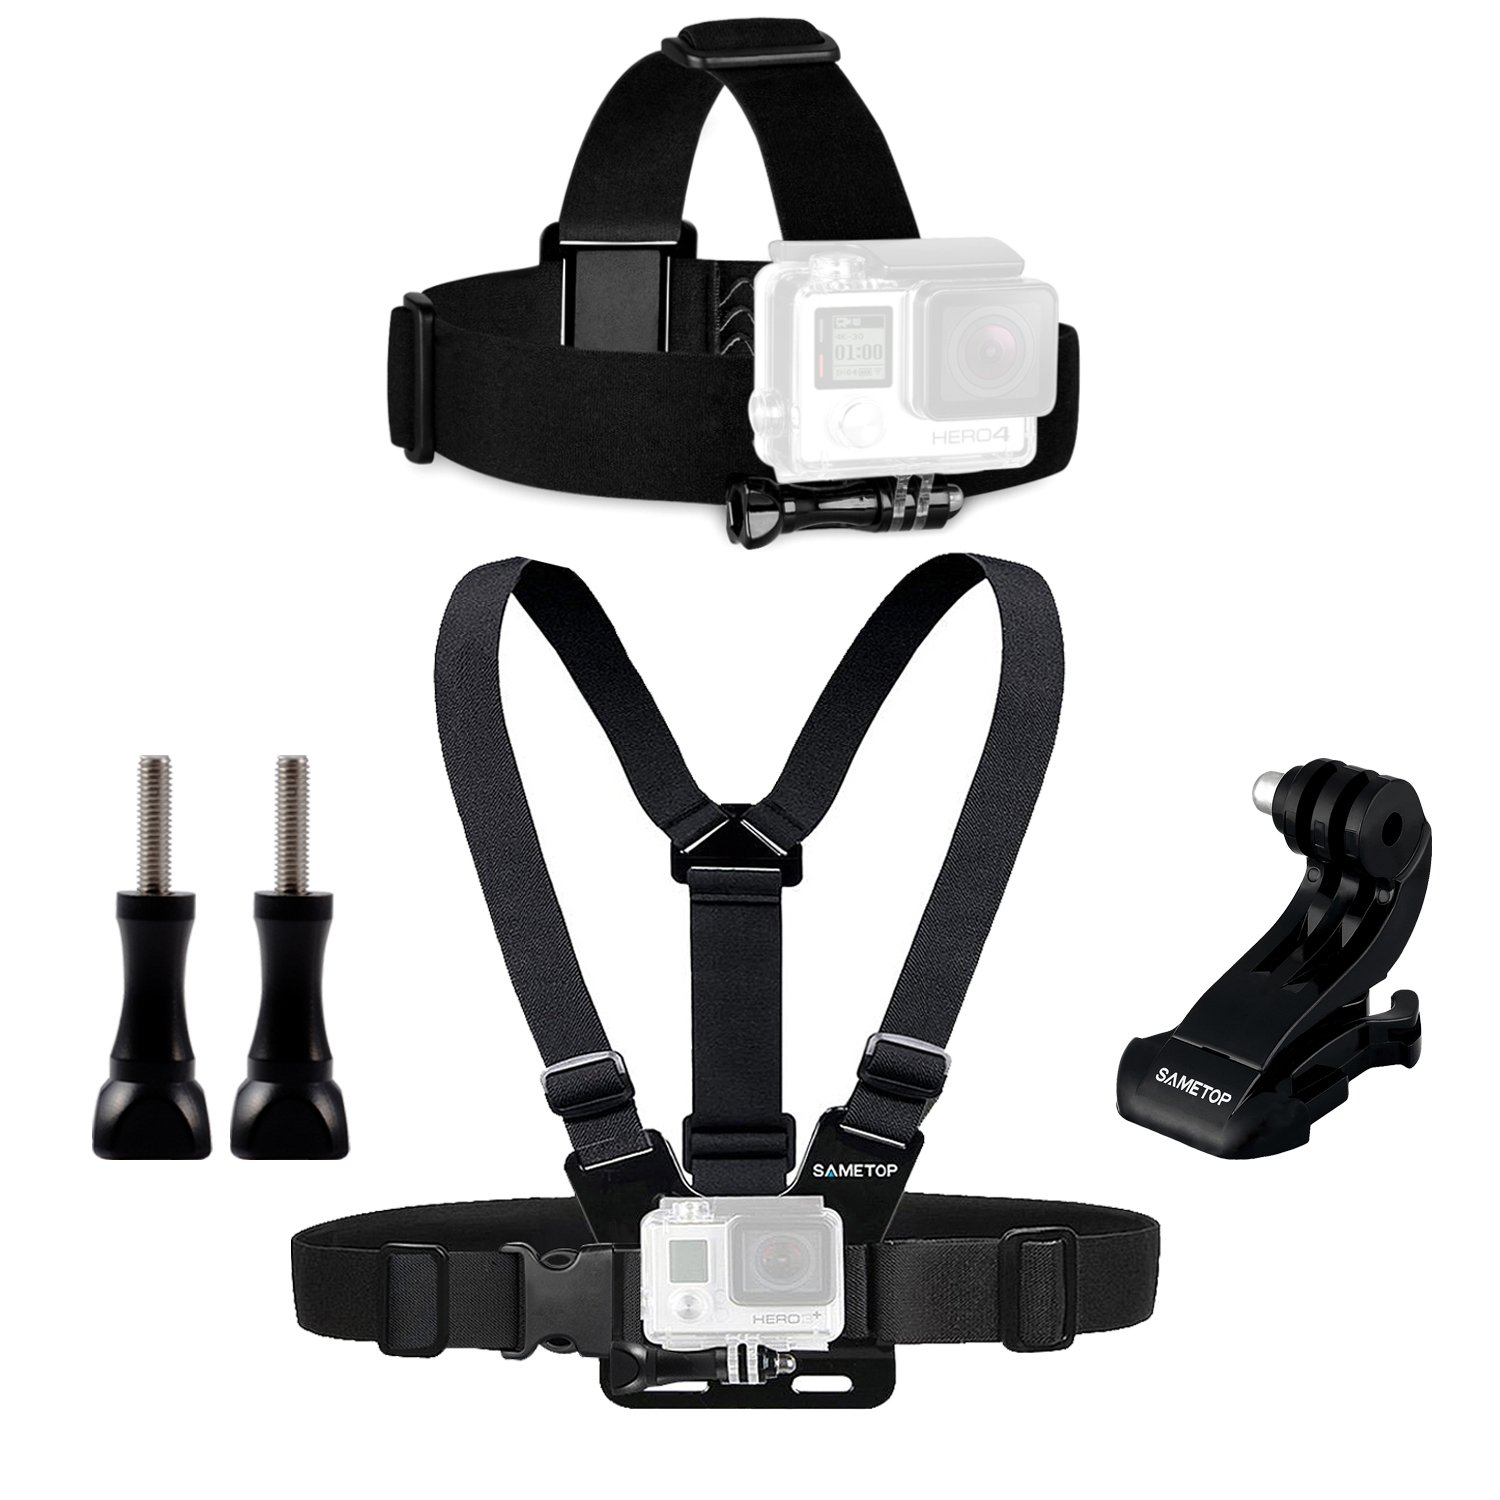 Sametop Replacement Chest Mount Harness Chesty Head Mount Strap Kit Compatible with GoPro Hero 6, 5, 4, Session, 3+, 3, 2, 1 Cameras